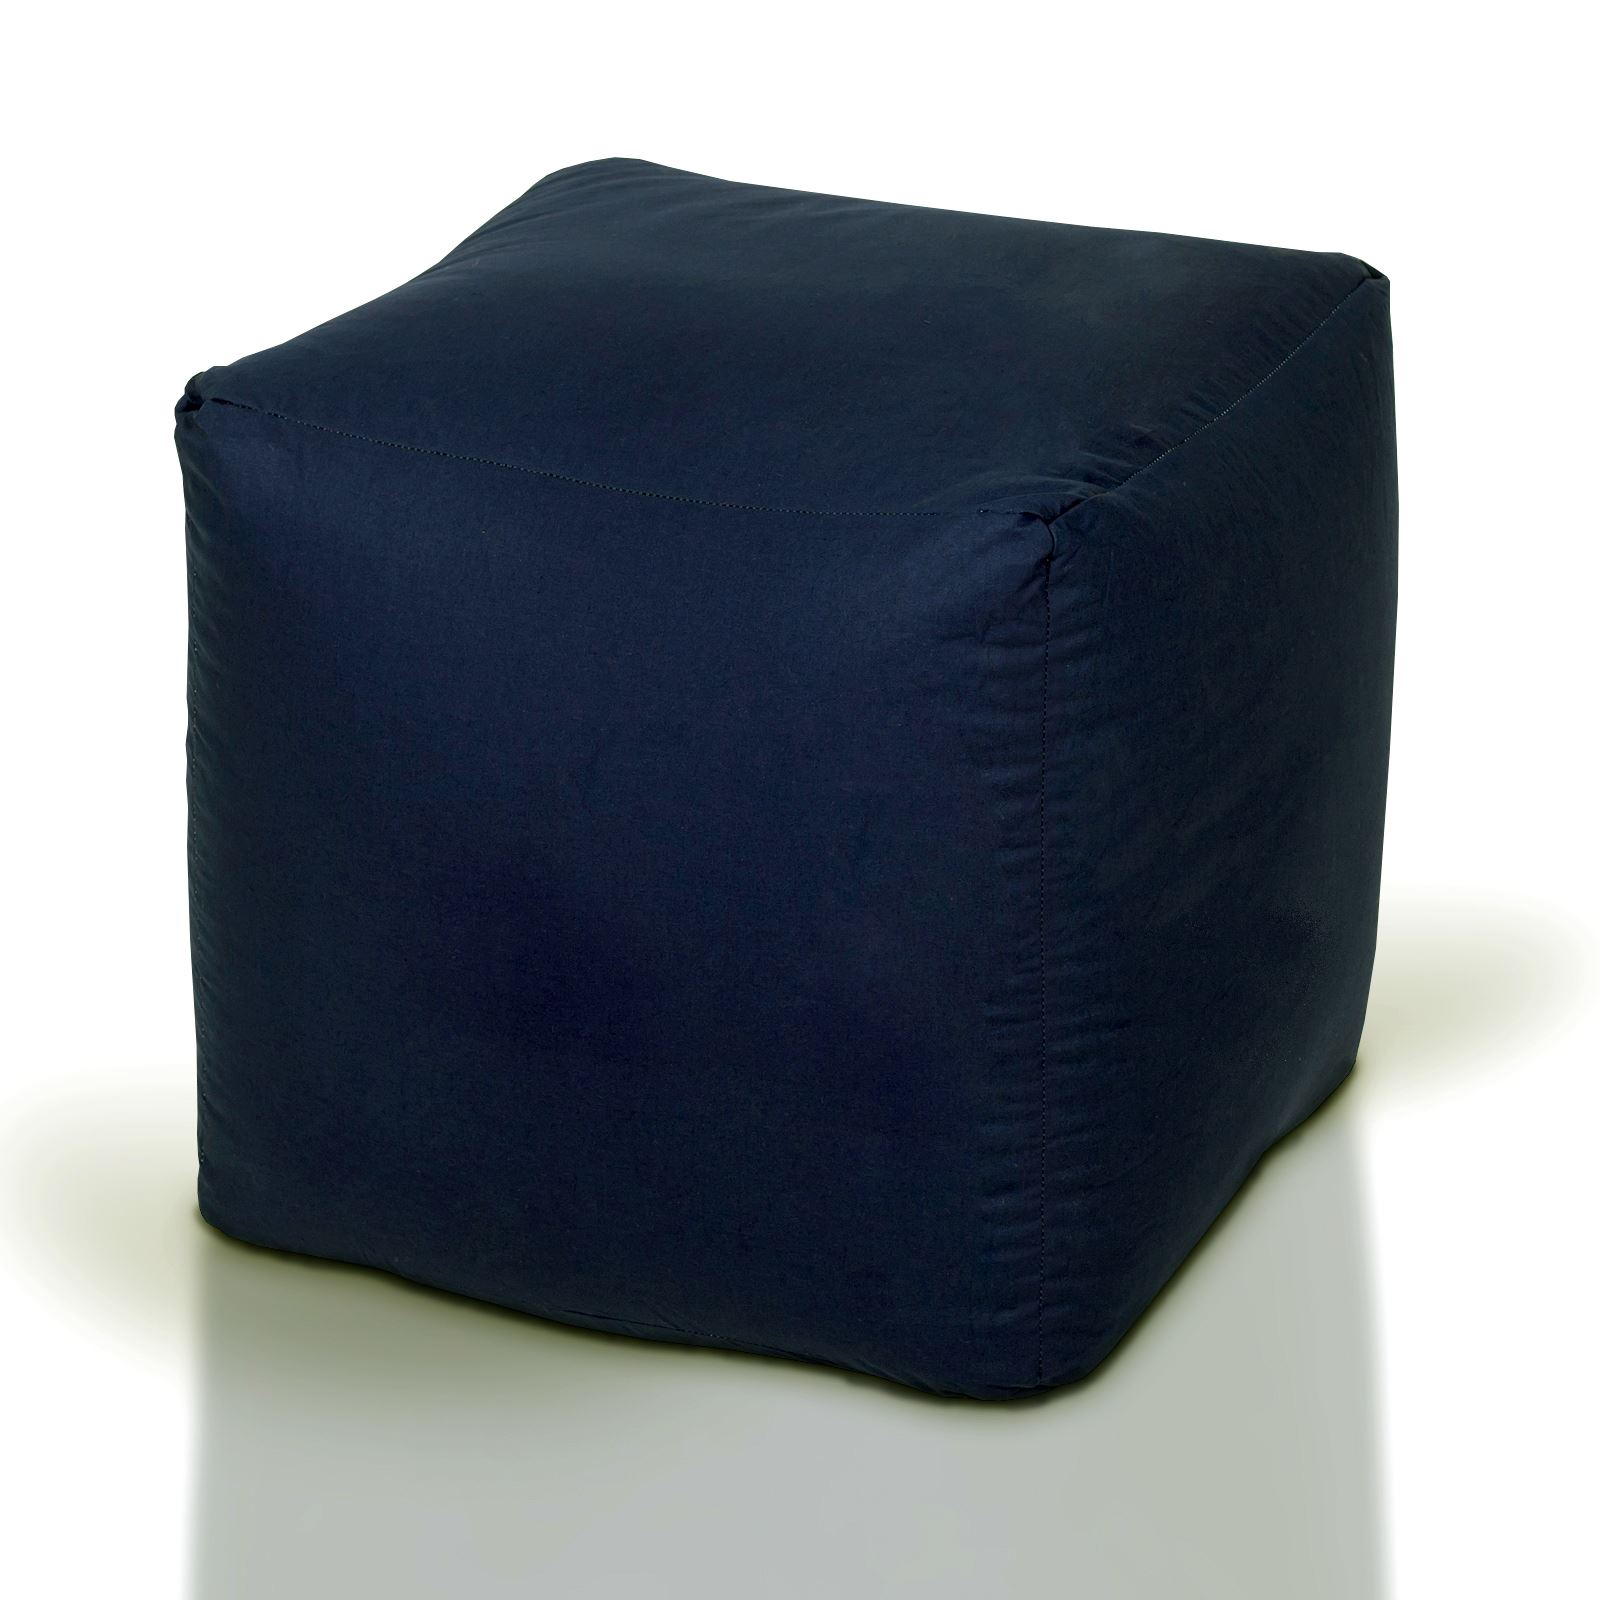 Bean-Bag-Childrens-Kids-Girls-Boys-Footstool-Rest-Pouffe-Cube-Box-Seat-Filled